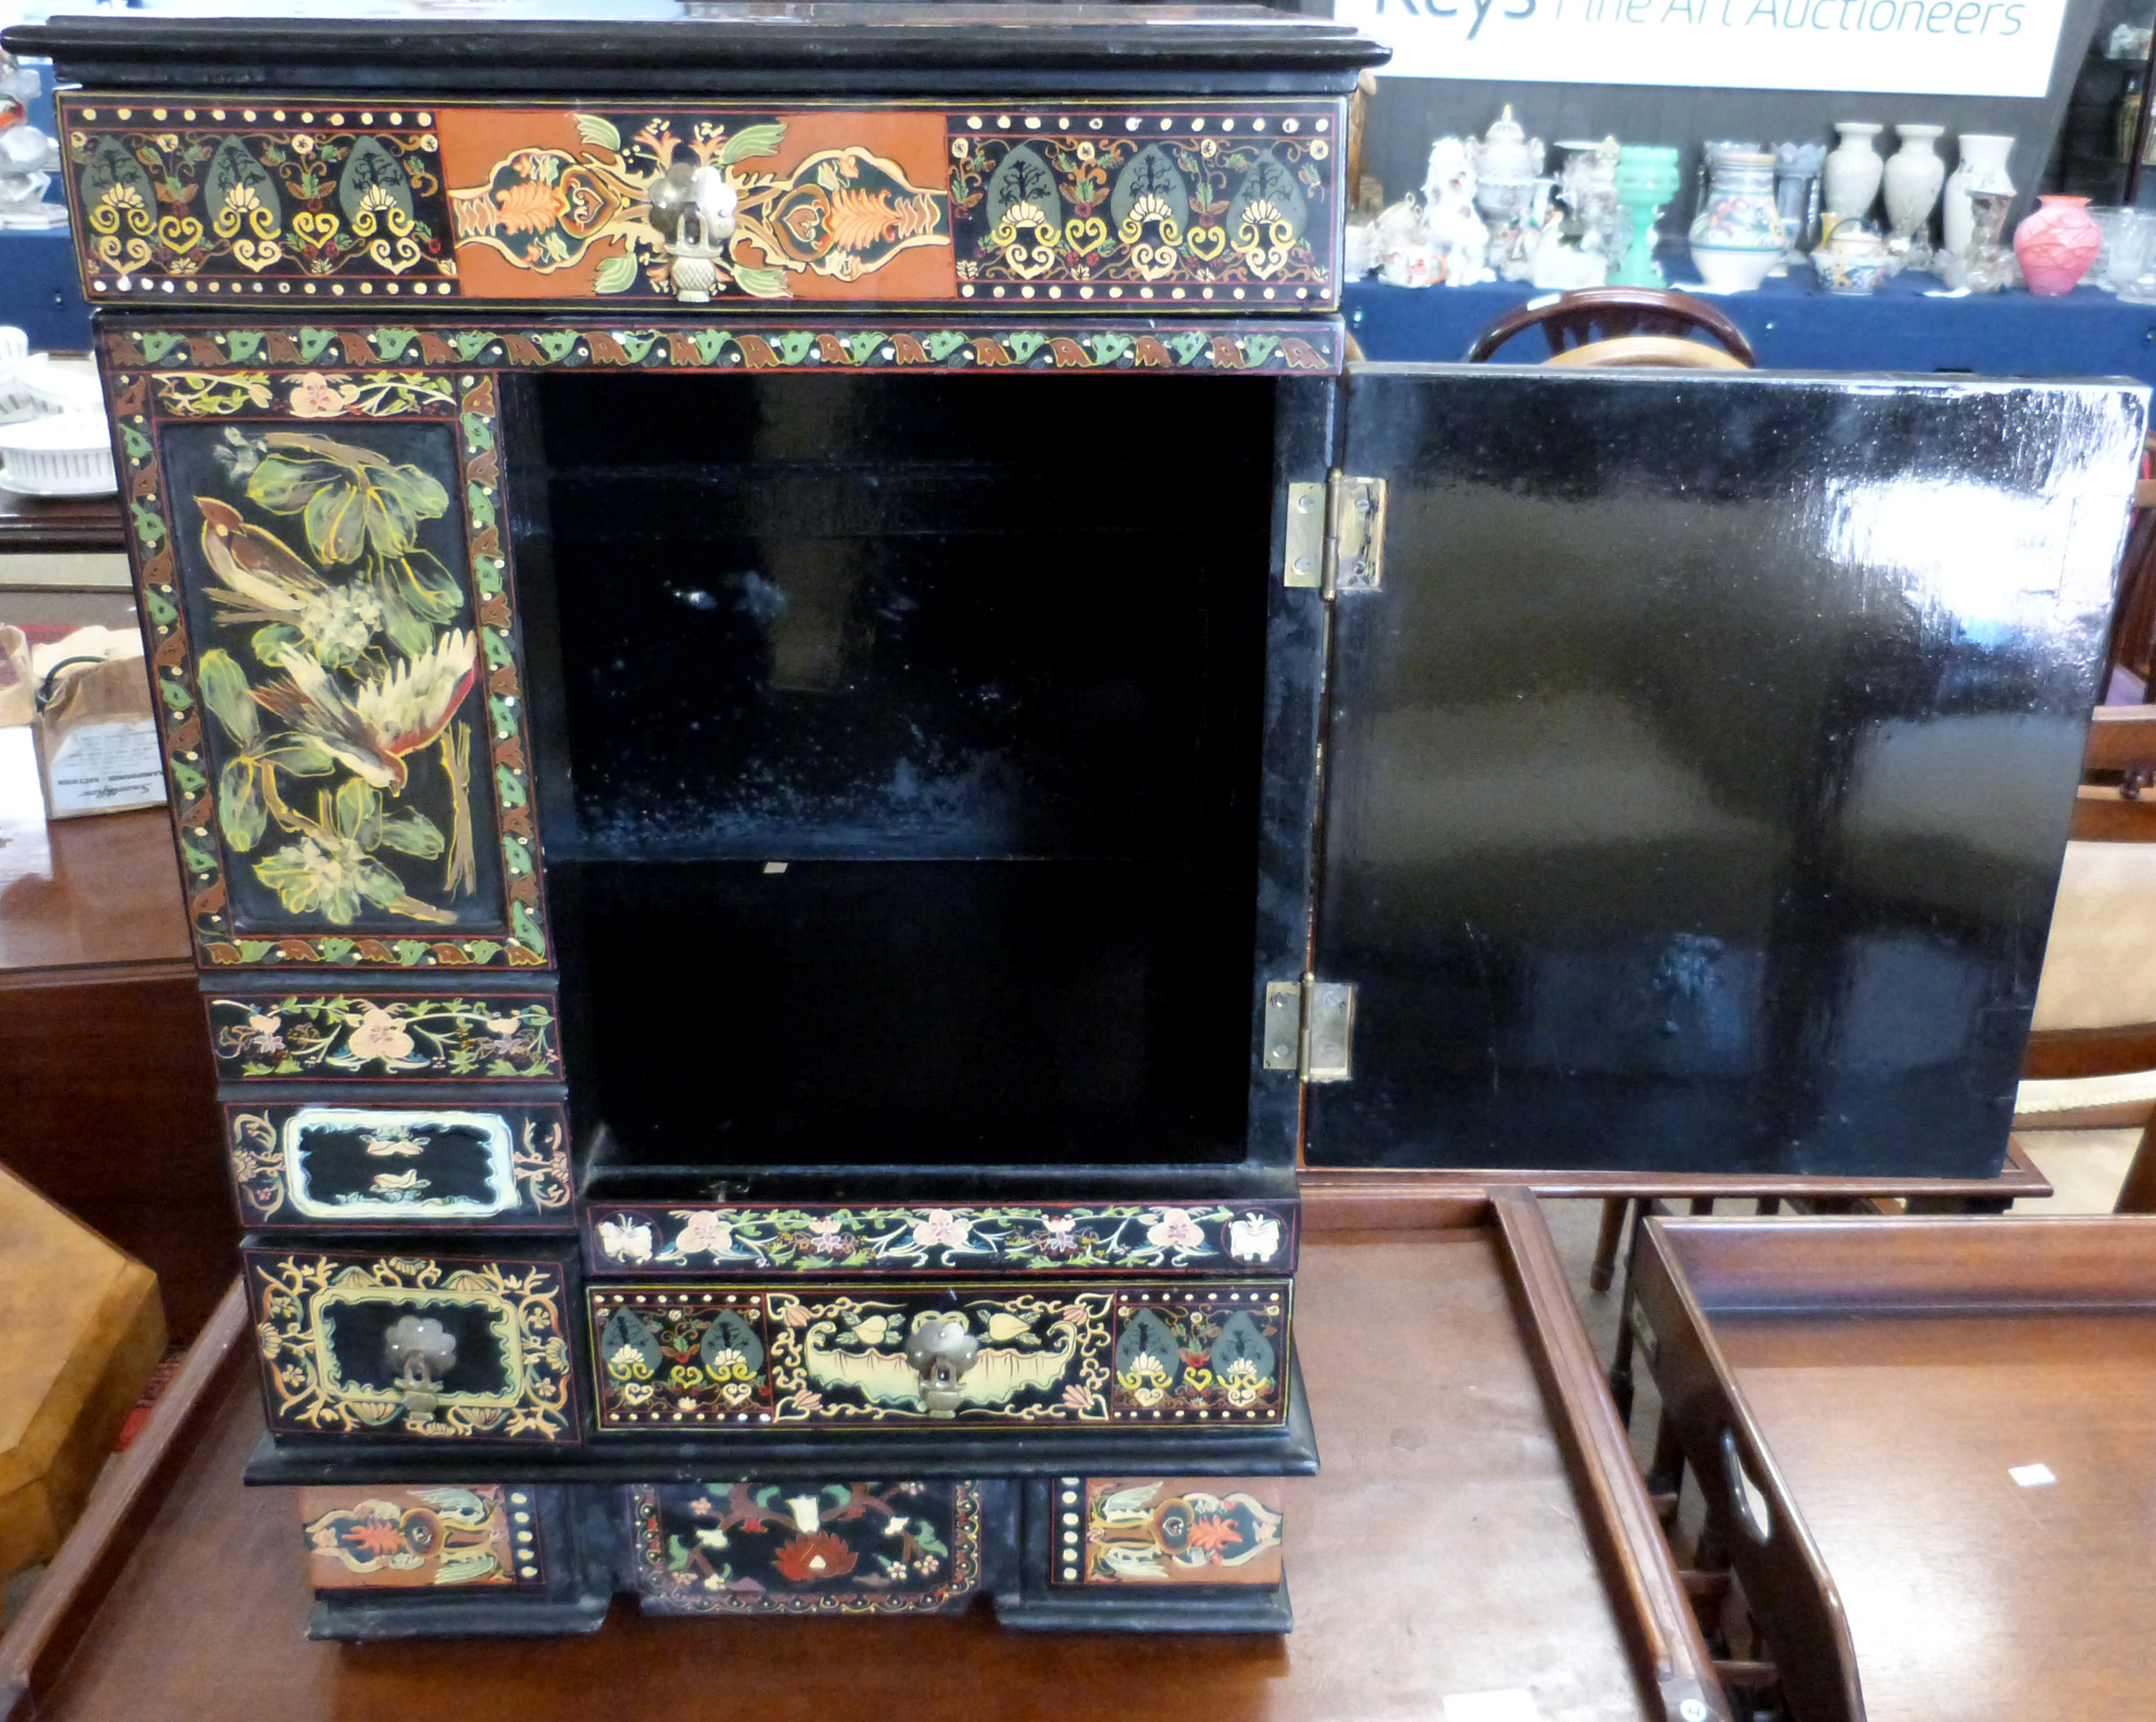 Mid-20th century Oriental style decorative table cabinet with painted scenes of Japanese figures, - Image 3 of 3